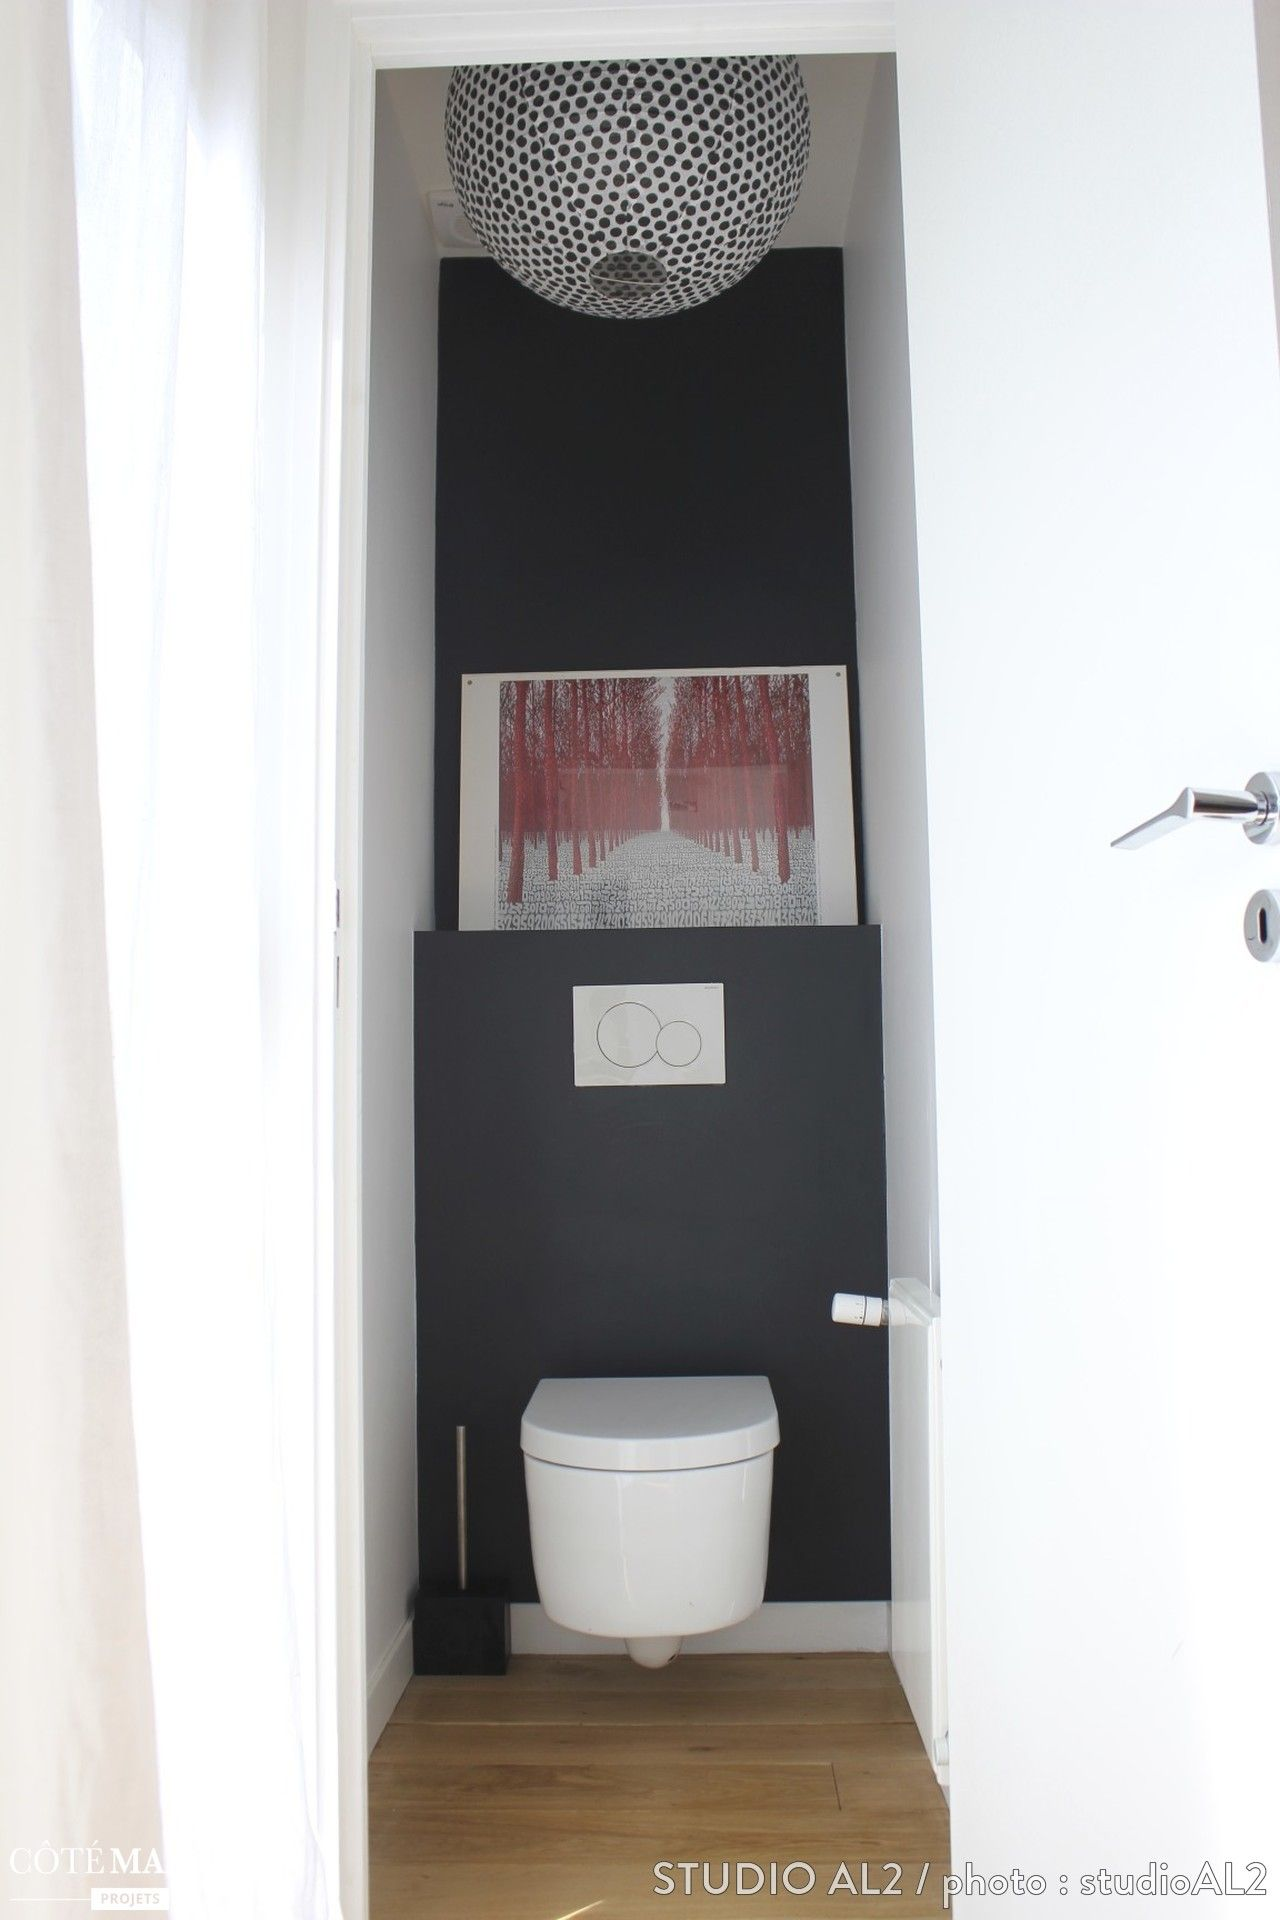 toilettes blanches au mur noir 1 seul tableau d coratif toilette wc styl s pinterest. Black Bedroom Furniture Sets. Home Design Ideas